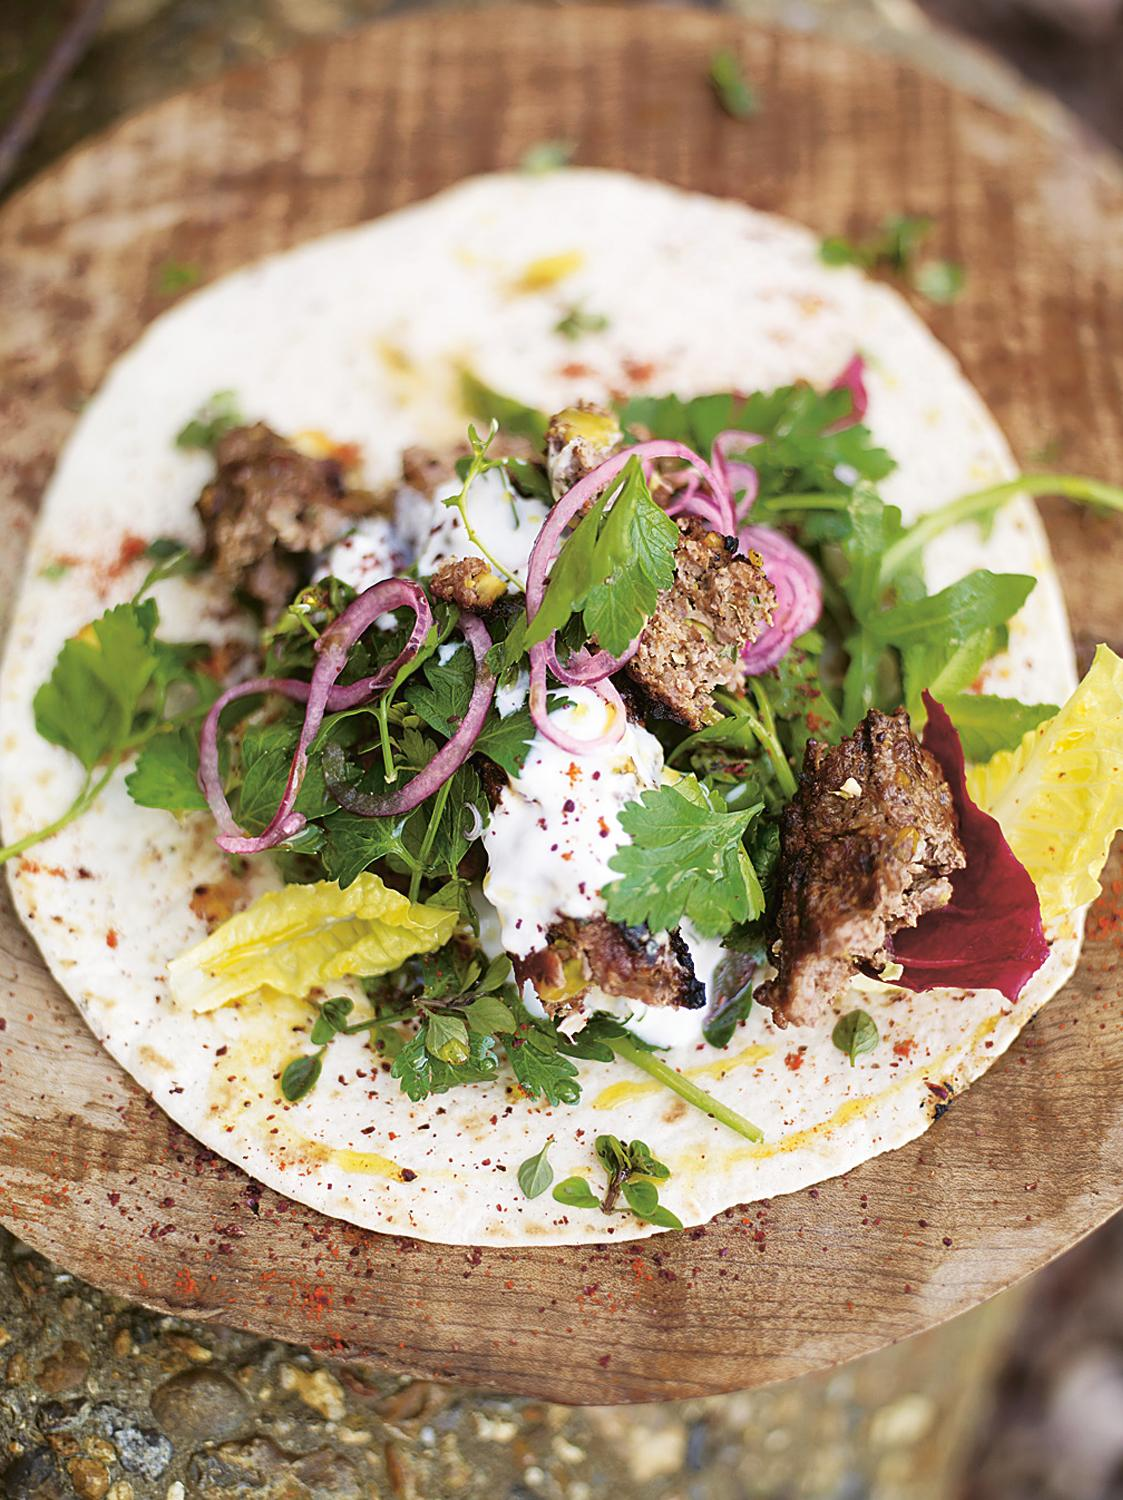 Grilled lamb kofta kebabs with pistachios & spicy salad wrap